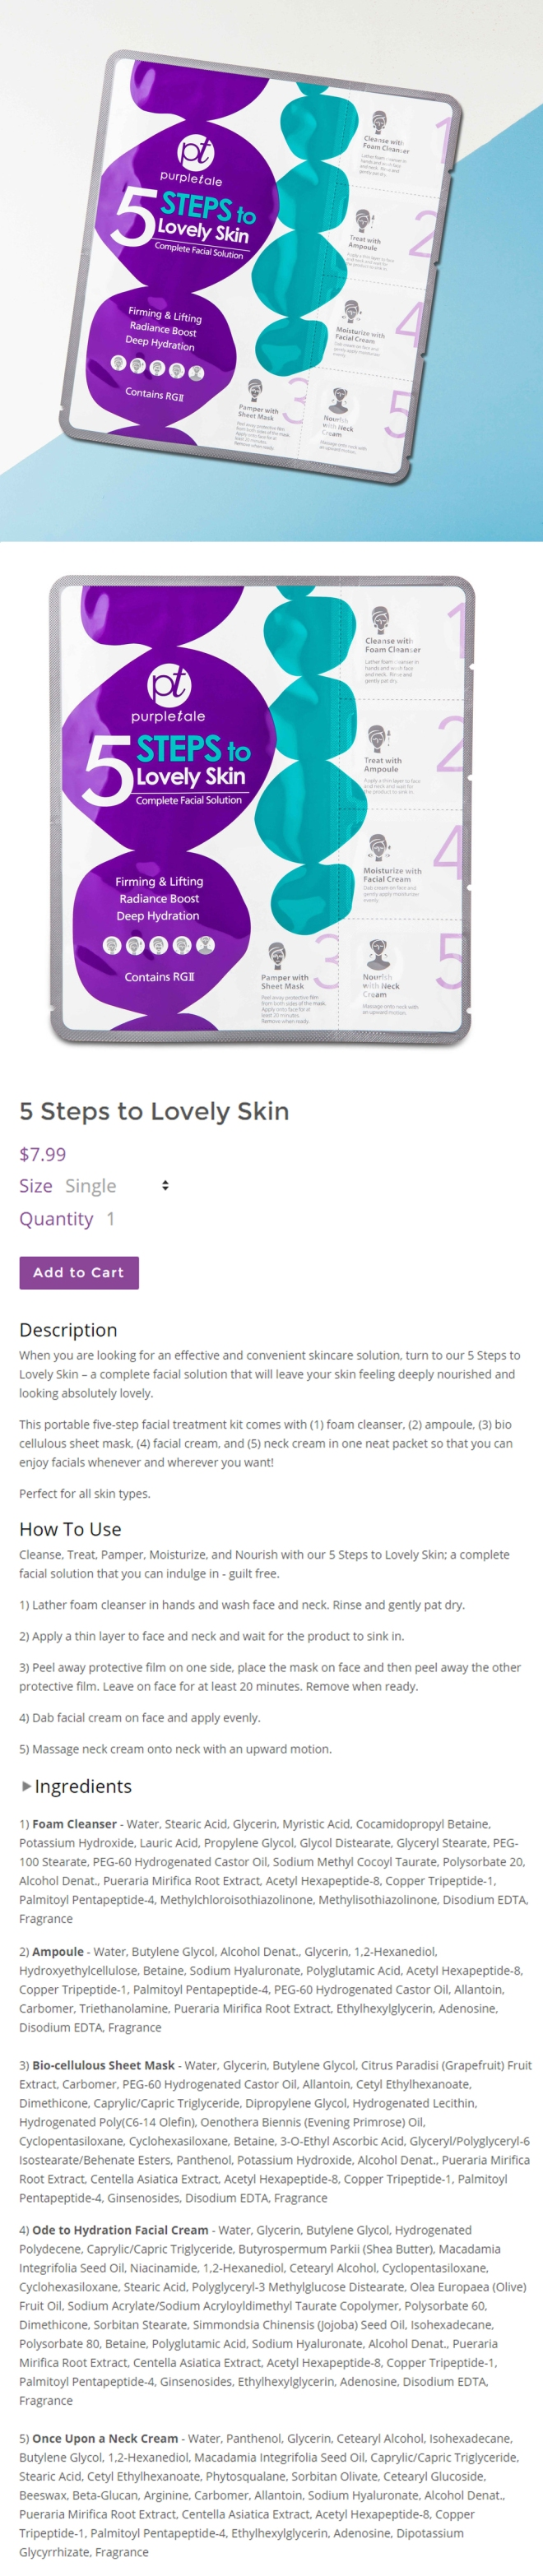 PurpleTale 5 Steps to Lovely Skin Complete Facial Solution (Product info)